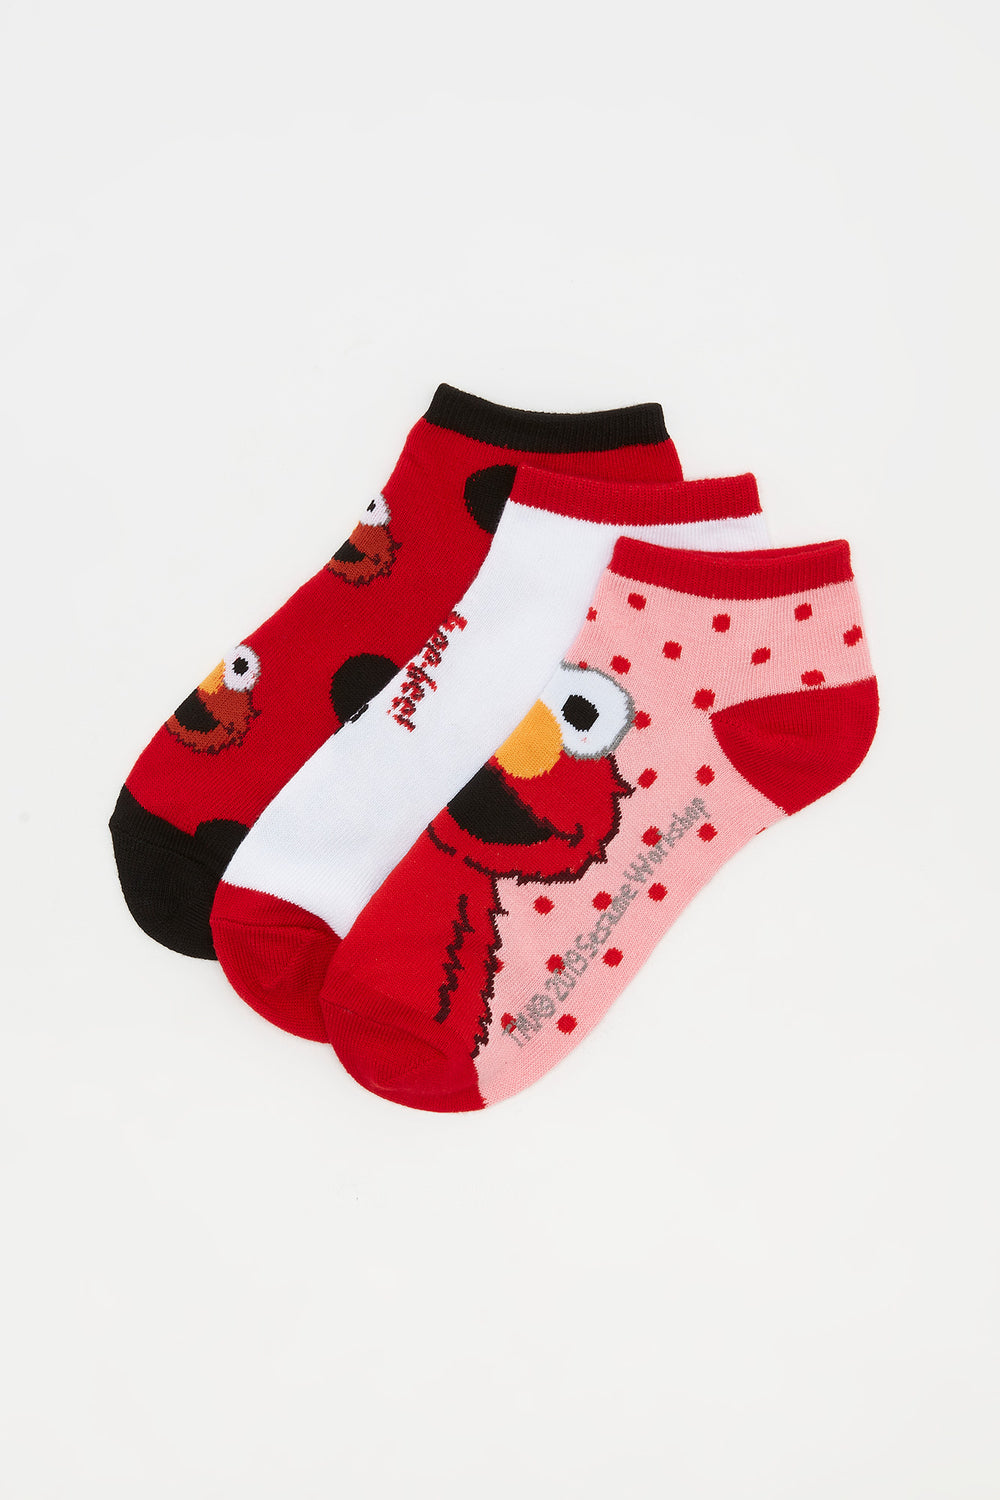 Elmo Ankle Socks (3 Pairs) Assorted